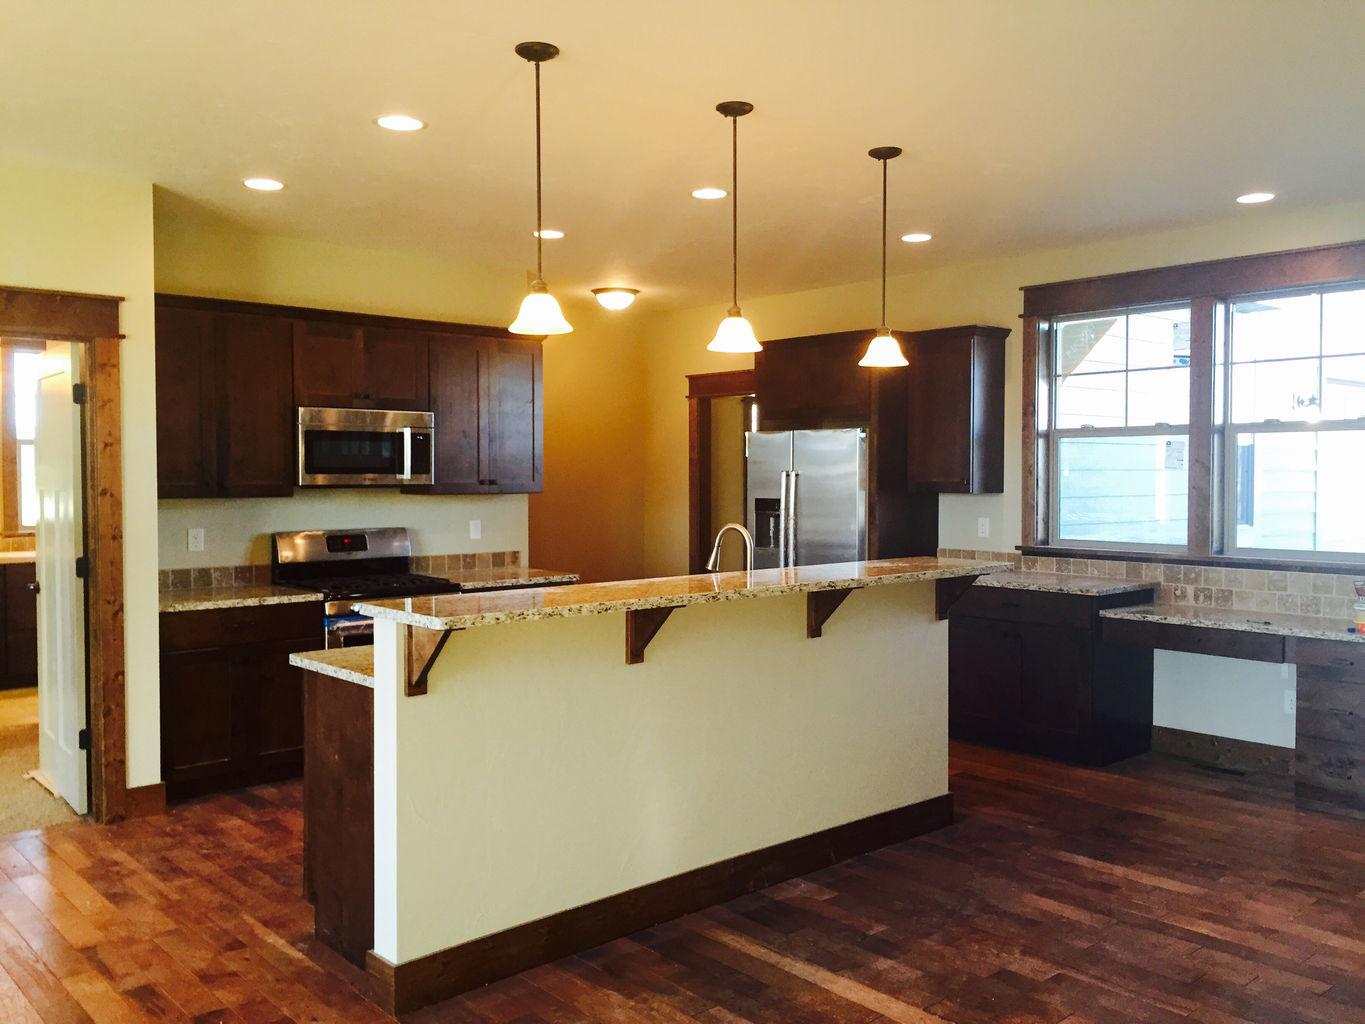 tamarack cottage co see the difference feel at home gallery model kitchen